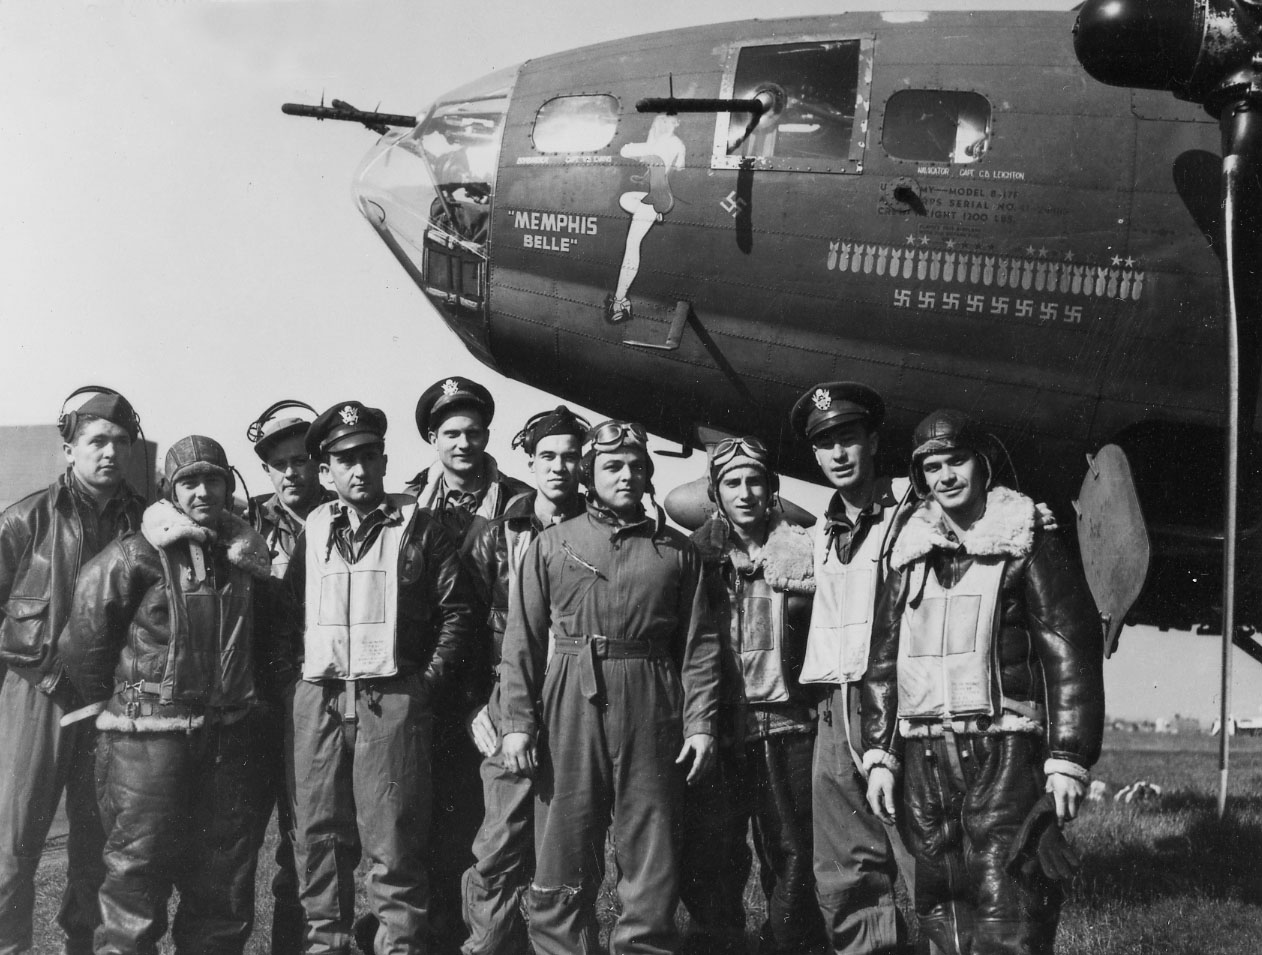 "The crew of the ""Memphis Belle""® after their 25th mission: (l to r) TSgt. Harold Loch (top turret gunner/engineer), SSg.t Cecil Scott (ball turret gunner), TSgt. Robert Hanson (radio operator), Capt. James Verinis (copilot), Capt. Robert Morgan (pilot), Capt. Charles Leighton (navigator), SSgt. John Quinlan (tail gunner), SSgt. Casimer Nastal (waist gunner), Capt. Vincent Evans (bombardier), and SSgt. Clarence Winchell (waist gunner). (U.S. Air Force photo) Gen. Hap Arnold, commander of the U.S. Army Air Forces, examining the ""Mempis Belle"" after it returned to the United States. (U.S. Air Force photo)"